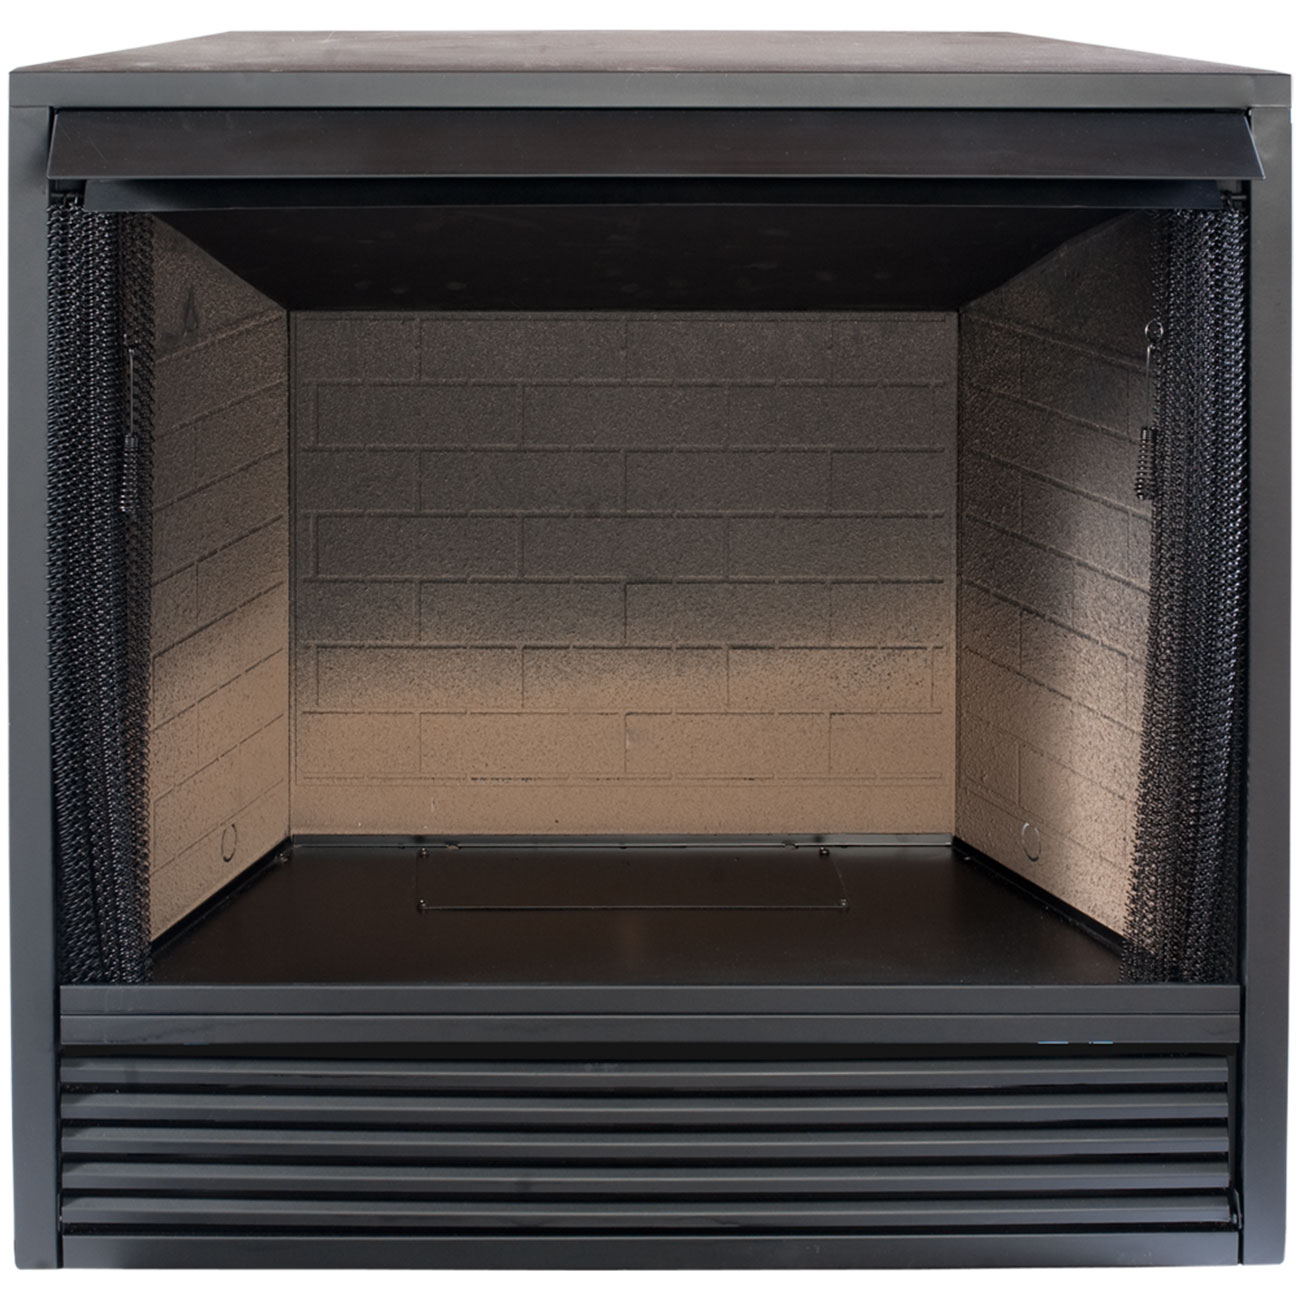 ProCom FireBox Insert PC32VFC ProCom Heating